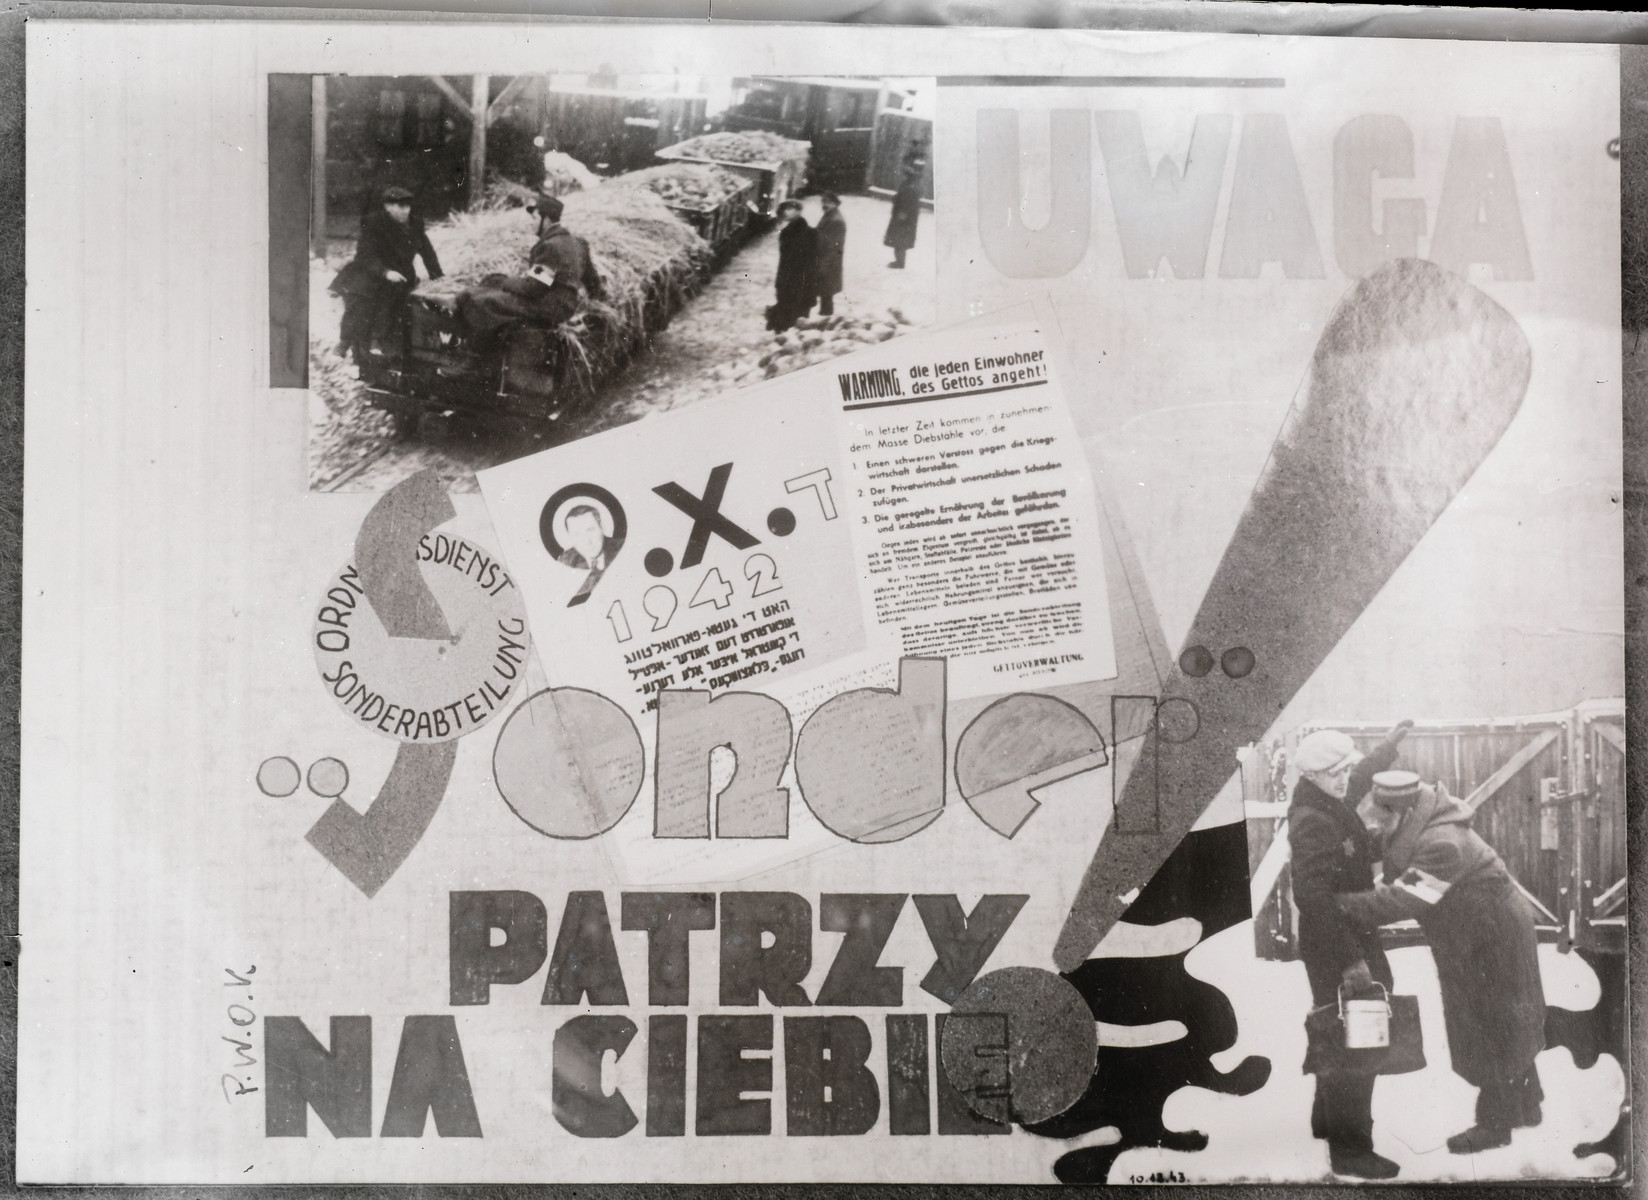 """Collage created by Arie Princ (now Ben Menachem) using documents from the Lodz ghetto and photographs by Mendel Grosman.   The sign reads: """"Uwaga Sonder patrzy na ciebie!"""" (""""Be careful Sonder watches you!"""").  The collage was published during the war by the underground organisation PWOK, the Aid for Prisoners of Concentration Camps."""